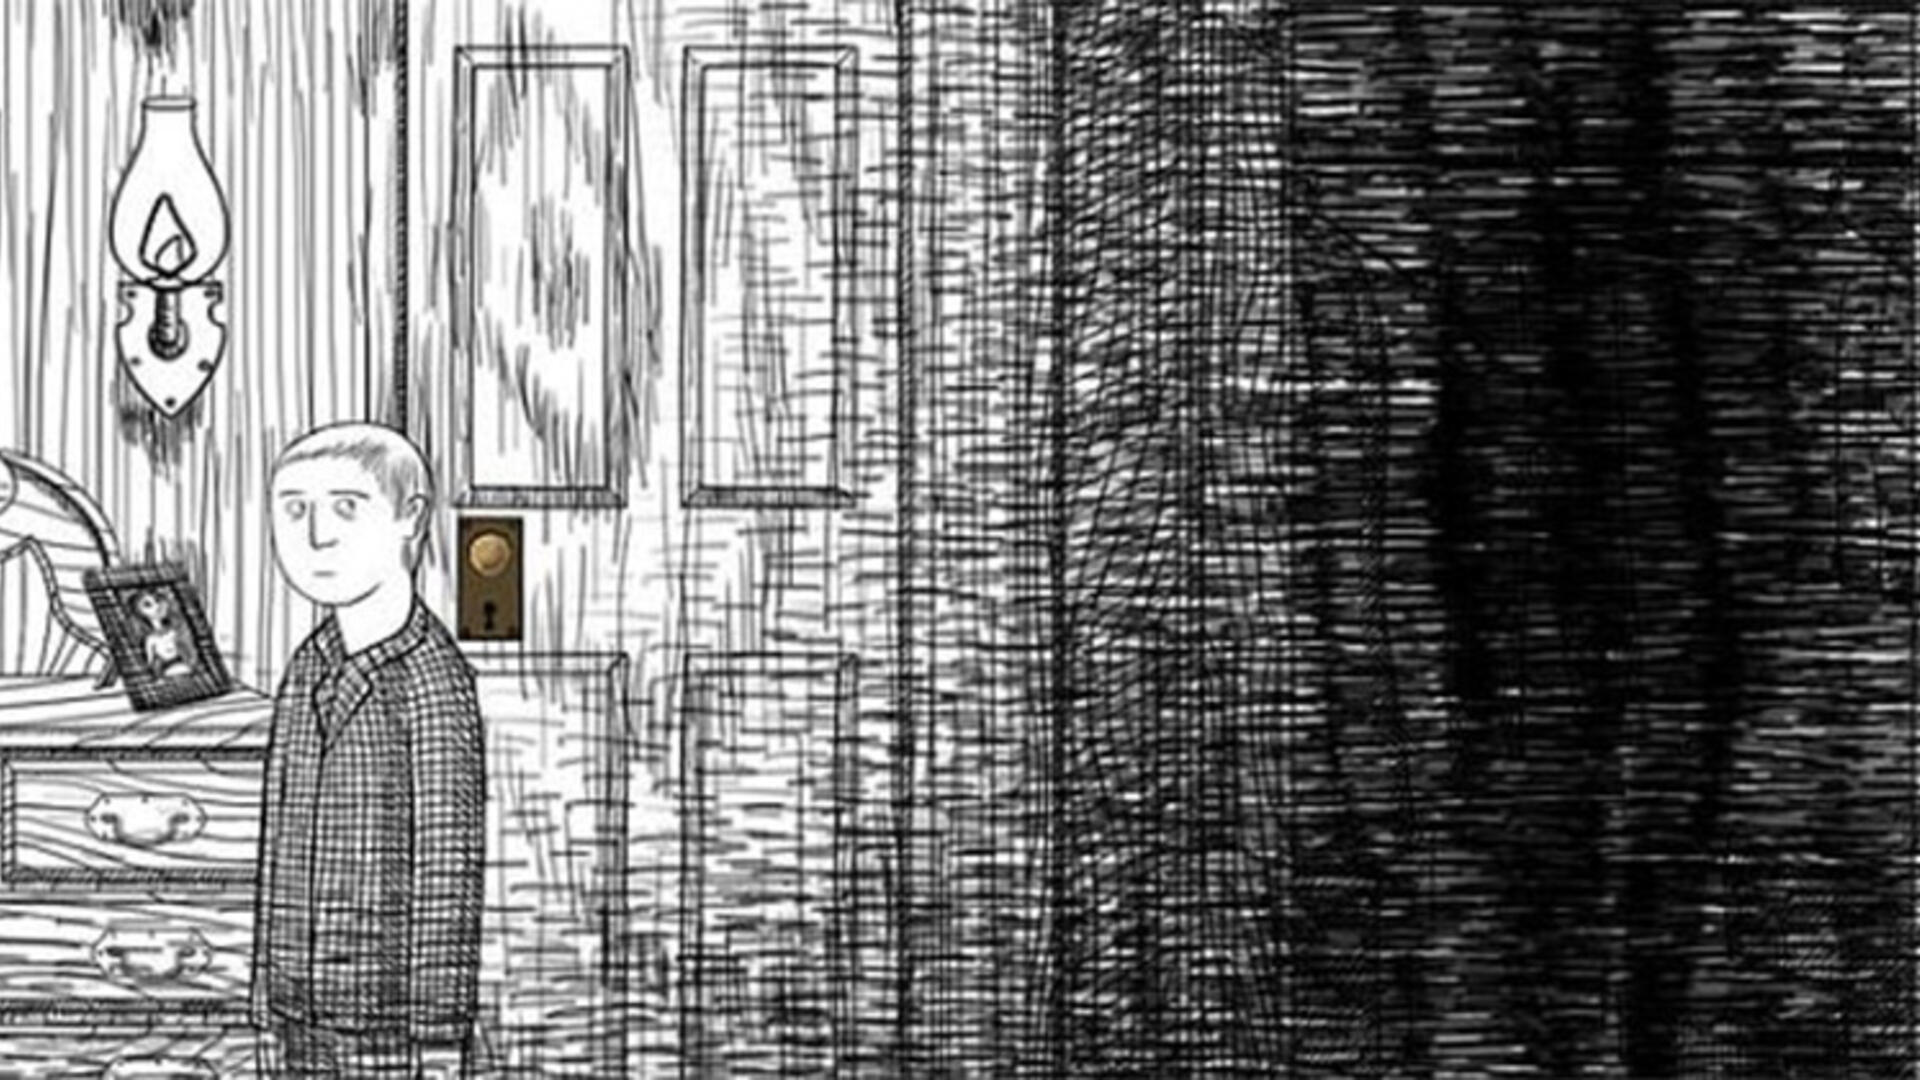 Neverending Nightmares PS4 Review: Haunted and Hunted